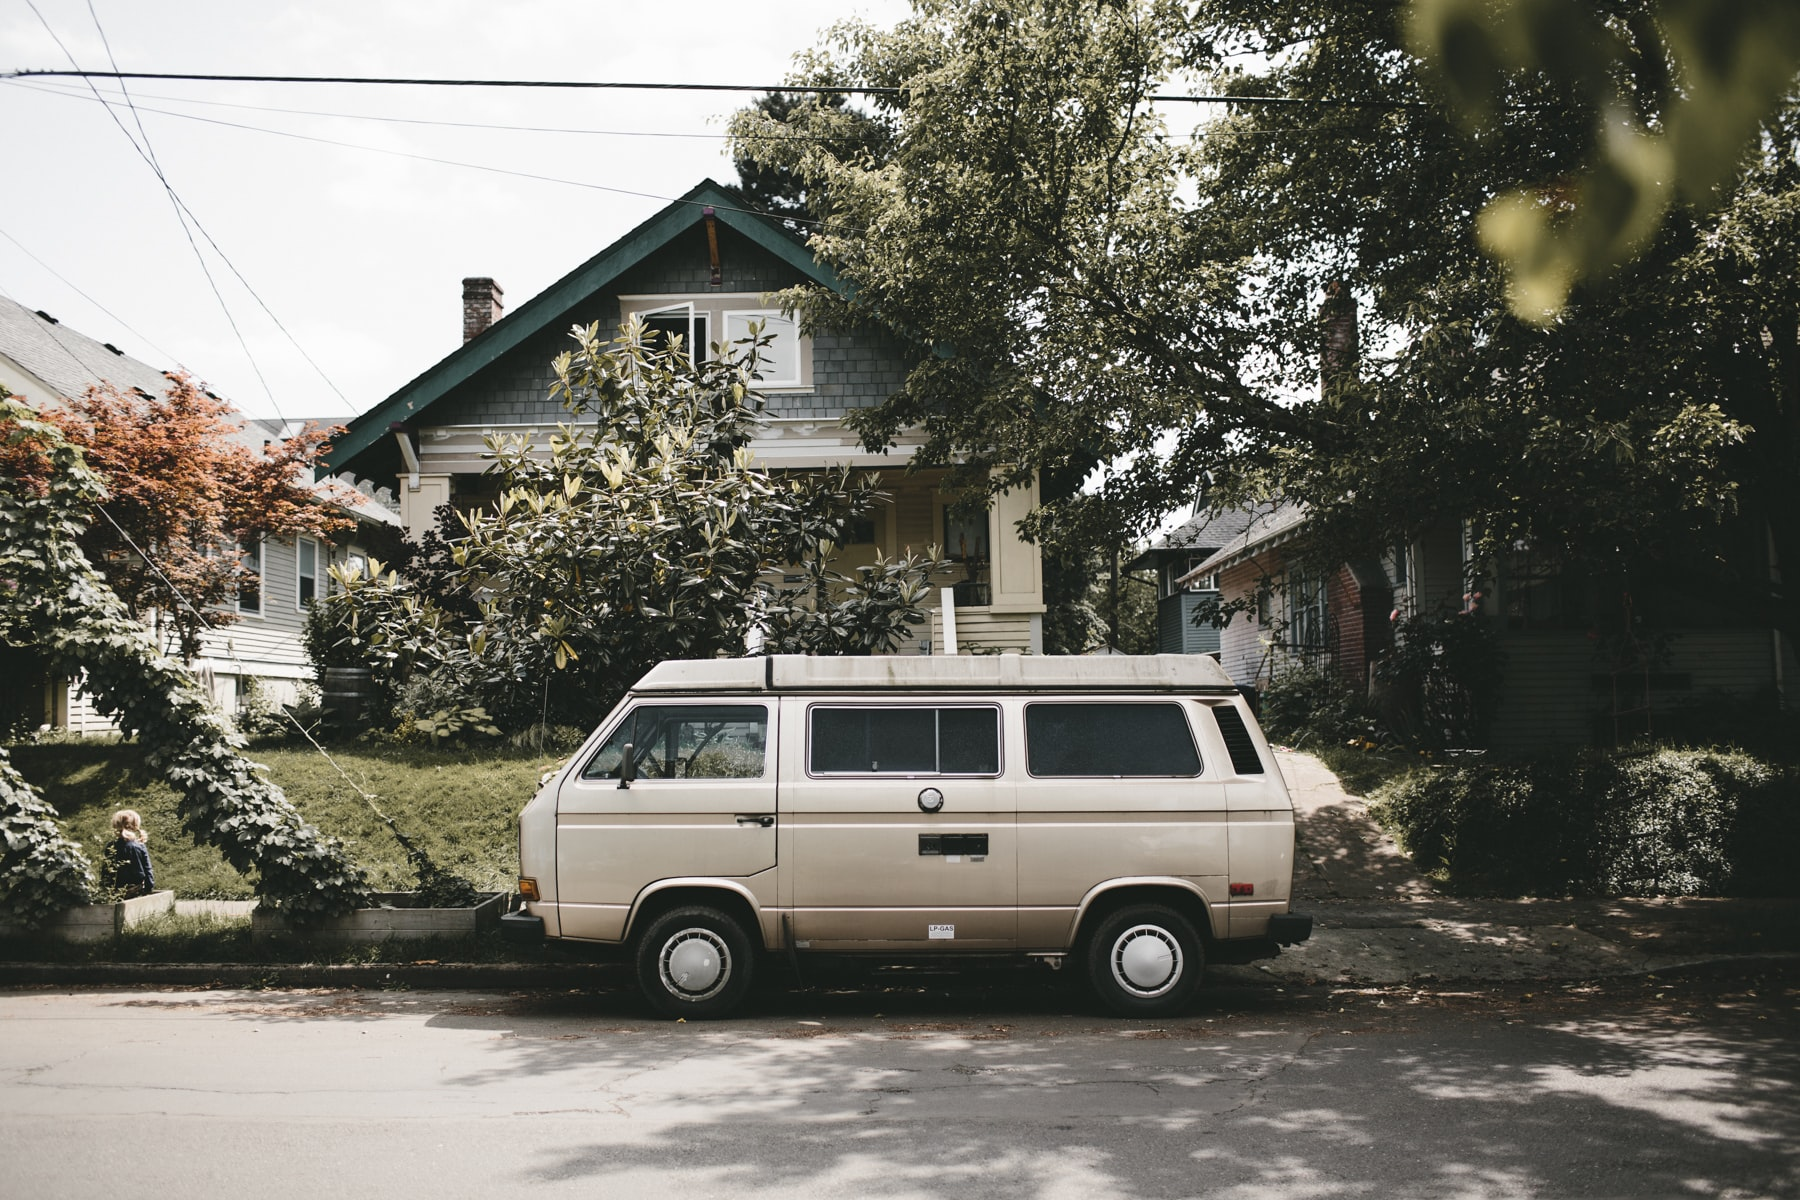 Volkswagen camper van parked on the side of the street in front of a house